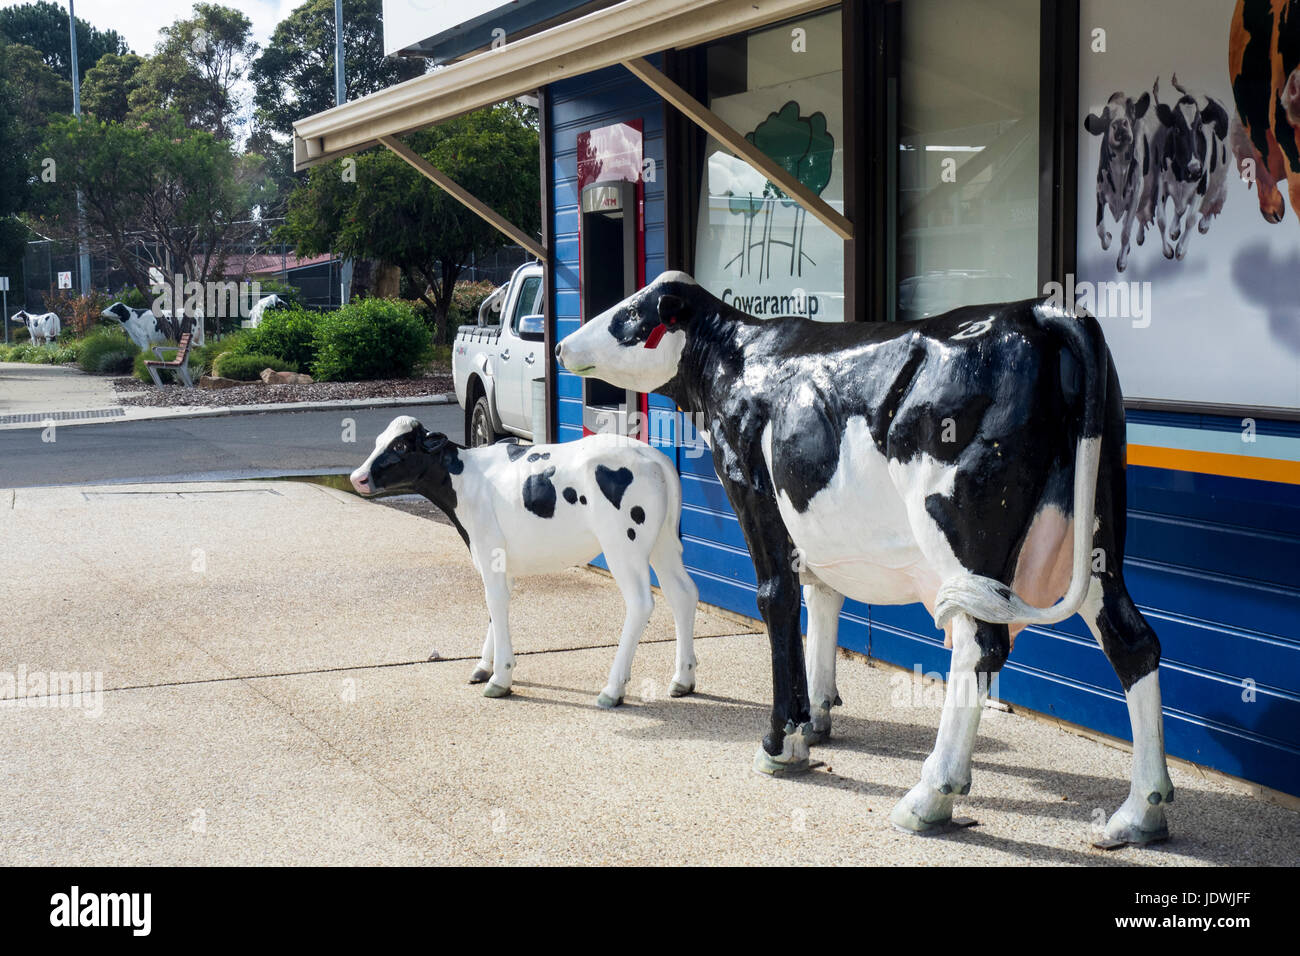 two-life-size-fibreglass-cow-sculptures-in-cowaramup-western-australia-JDWJFF.jpg